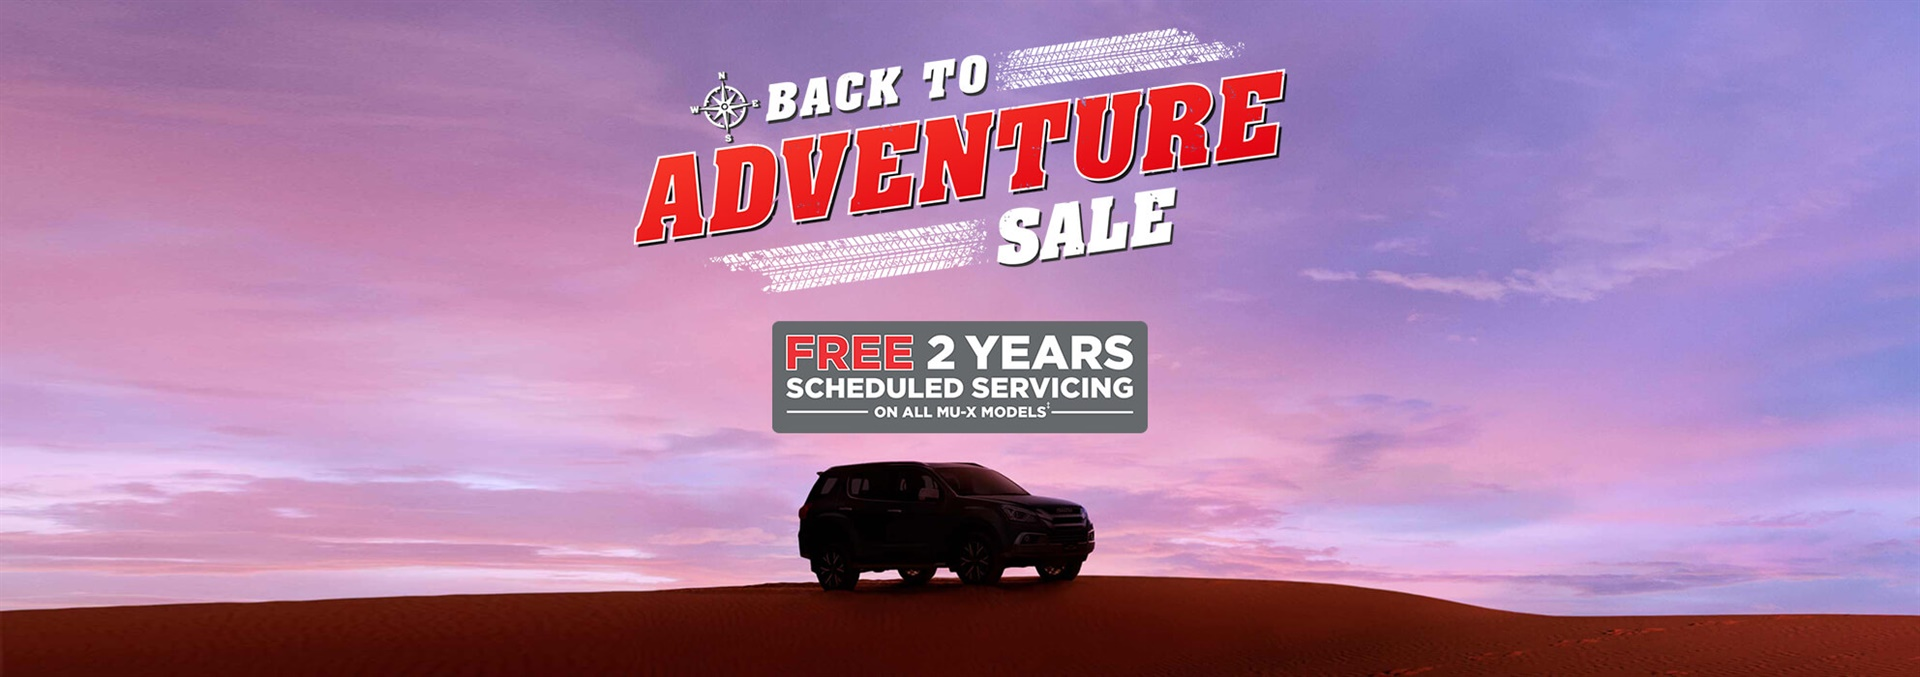 Back To Adventure Sale